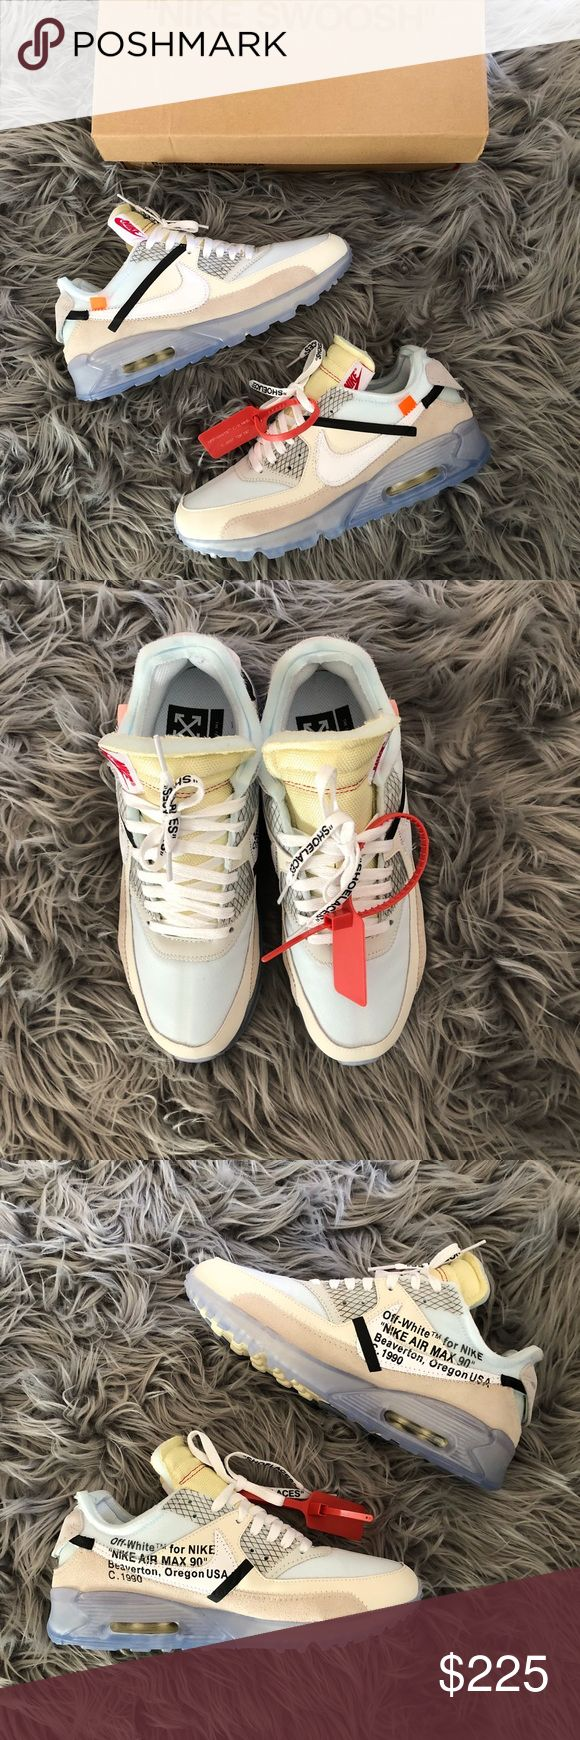 Off White x Nike Air Max 90 Swoosh The Top Ten Size: 10 but fits like 9.5 (This goes for all normal Max 90 pairs)  Condition: 10/10.   * Ships within 24 hours or less EXCLUDING weekends. Submitted offers will be responded ONLY!   Prada Louis Vuitton Chanel Goyard LV Luluemon Burberry Hermes Berkin Nike Purse Adidas Yeezy Supreme Bape Box Logo Jacket Zara HM Luxury YSL Saint Laurent Versace Balmain Amiri Gucci Monogram Demin All Off White Givenchy Vintage Fur Off-White Shoes